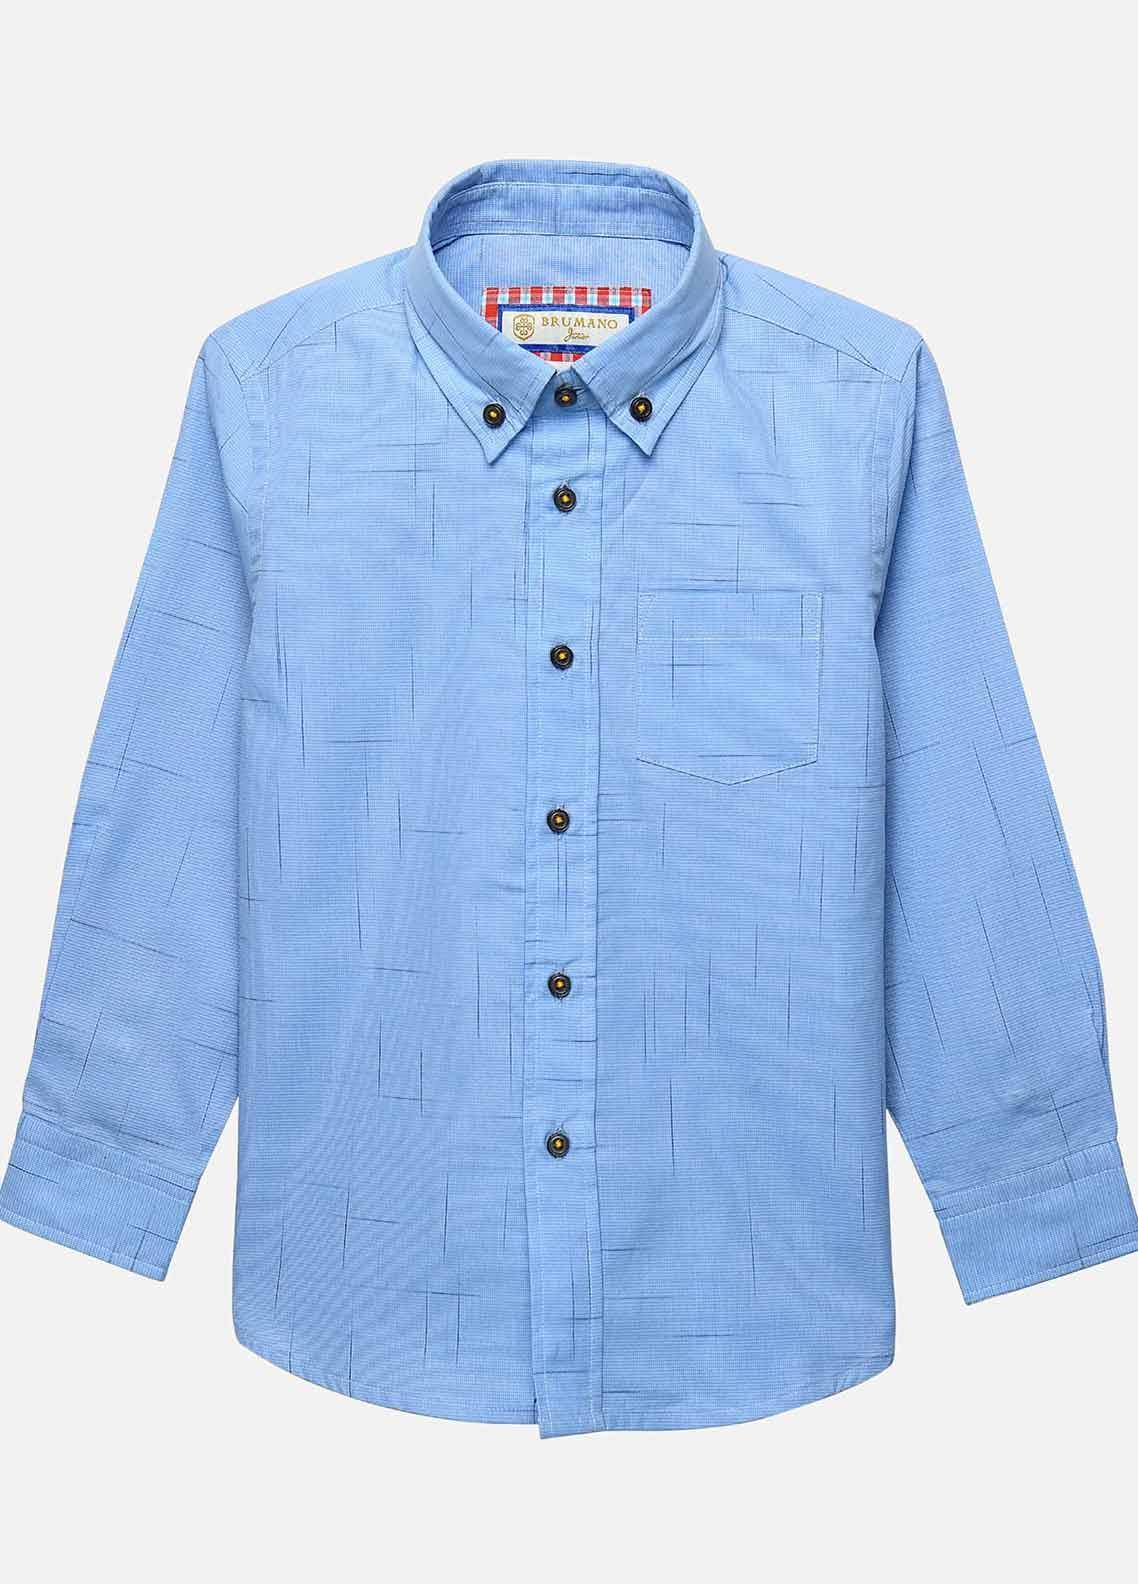 Brumano Cotton Casual Shirts for Boys -  BM20JS Blue Check Slub Patterned Casual Shirt-Junior